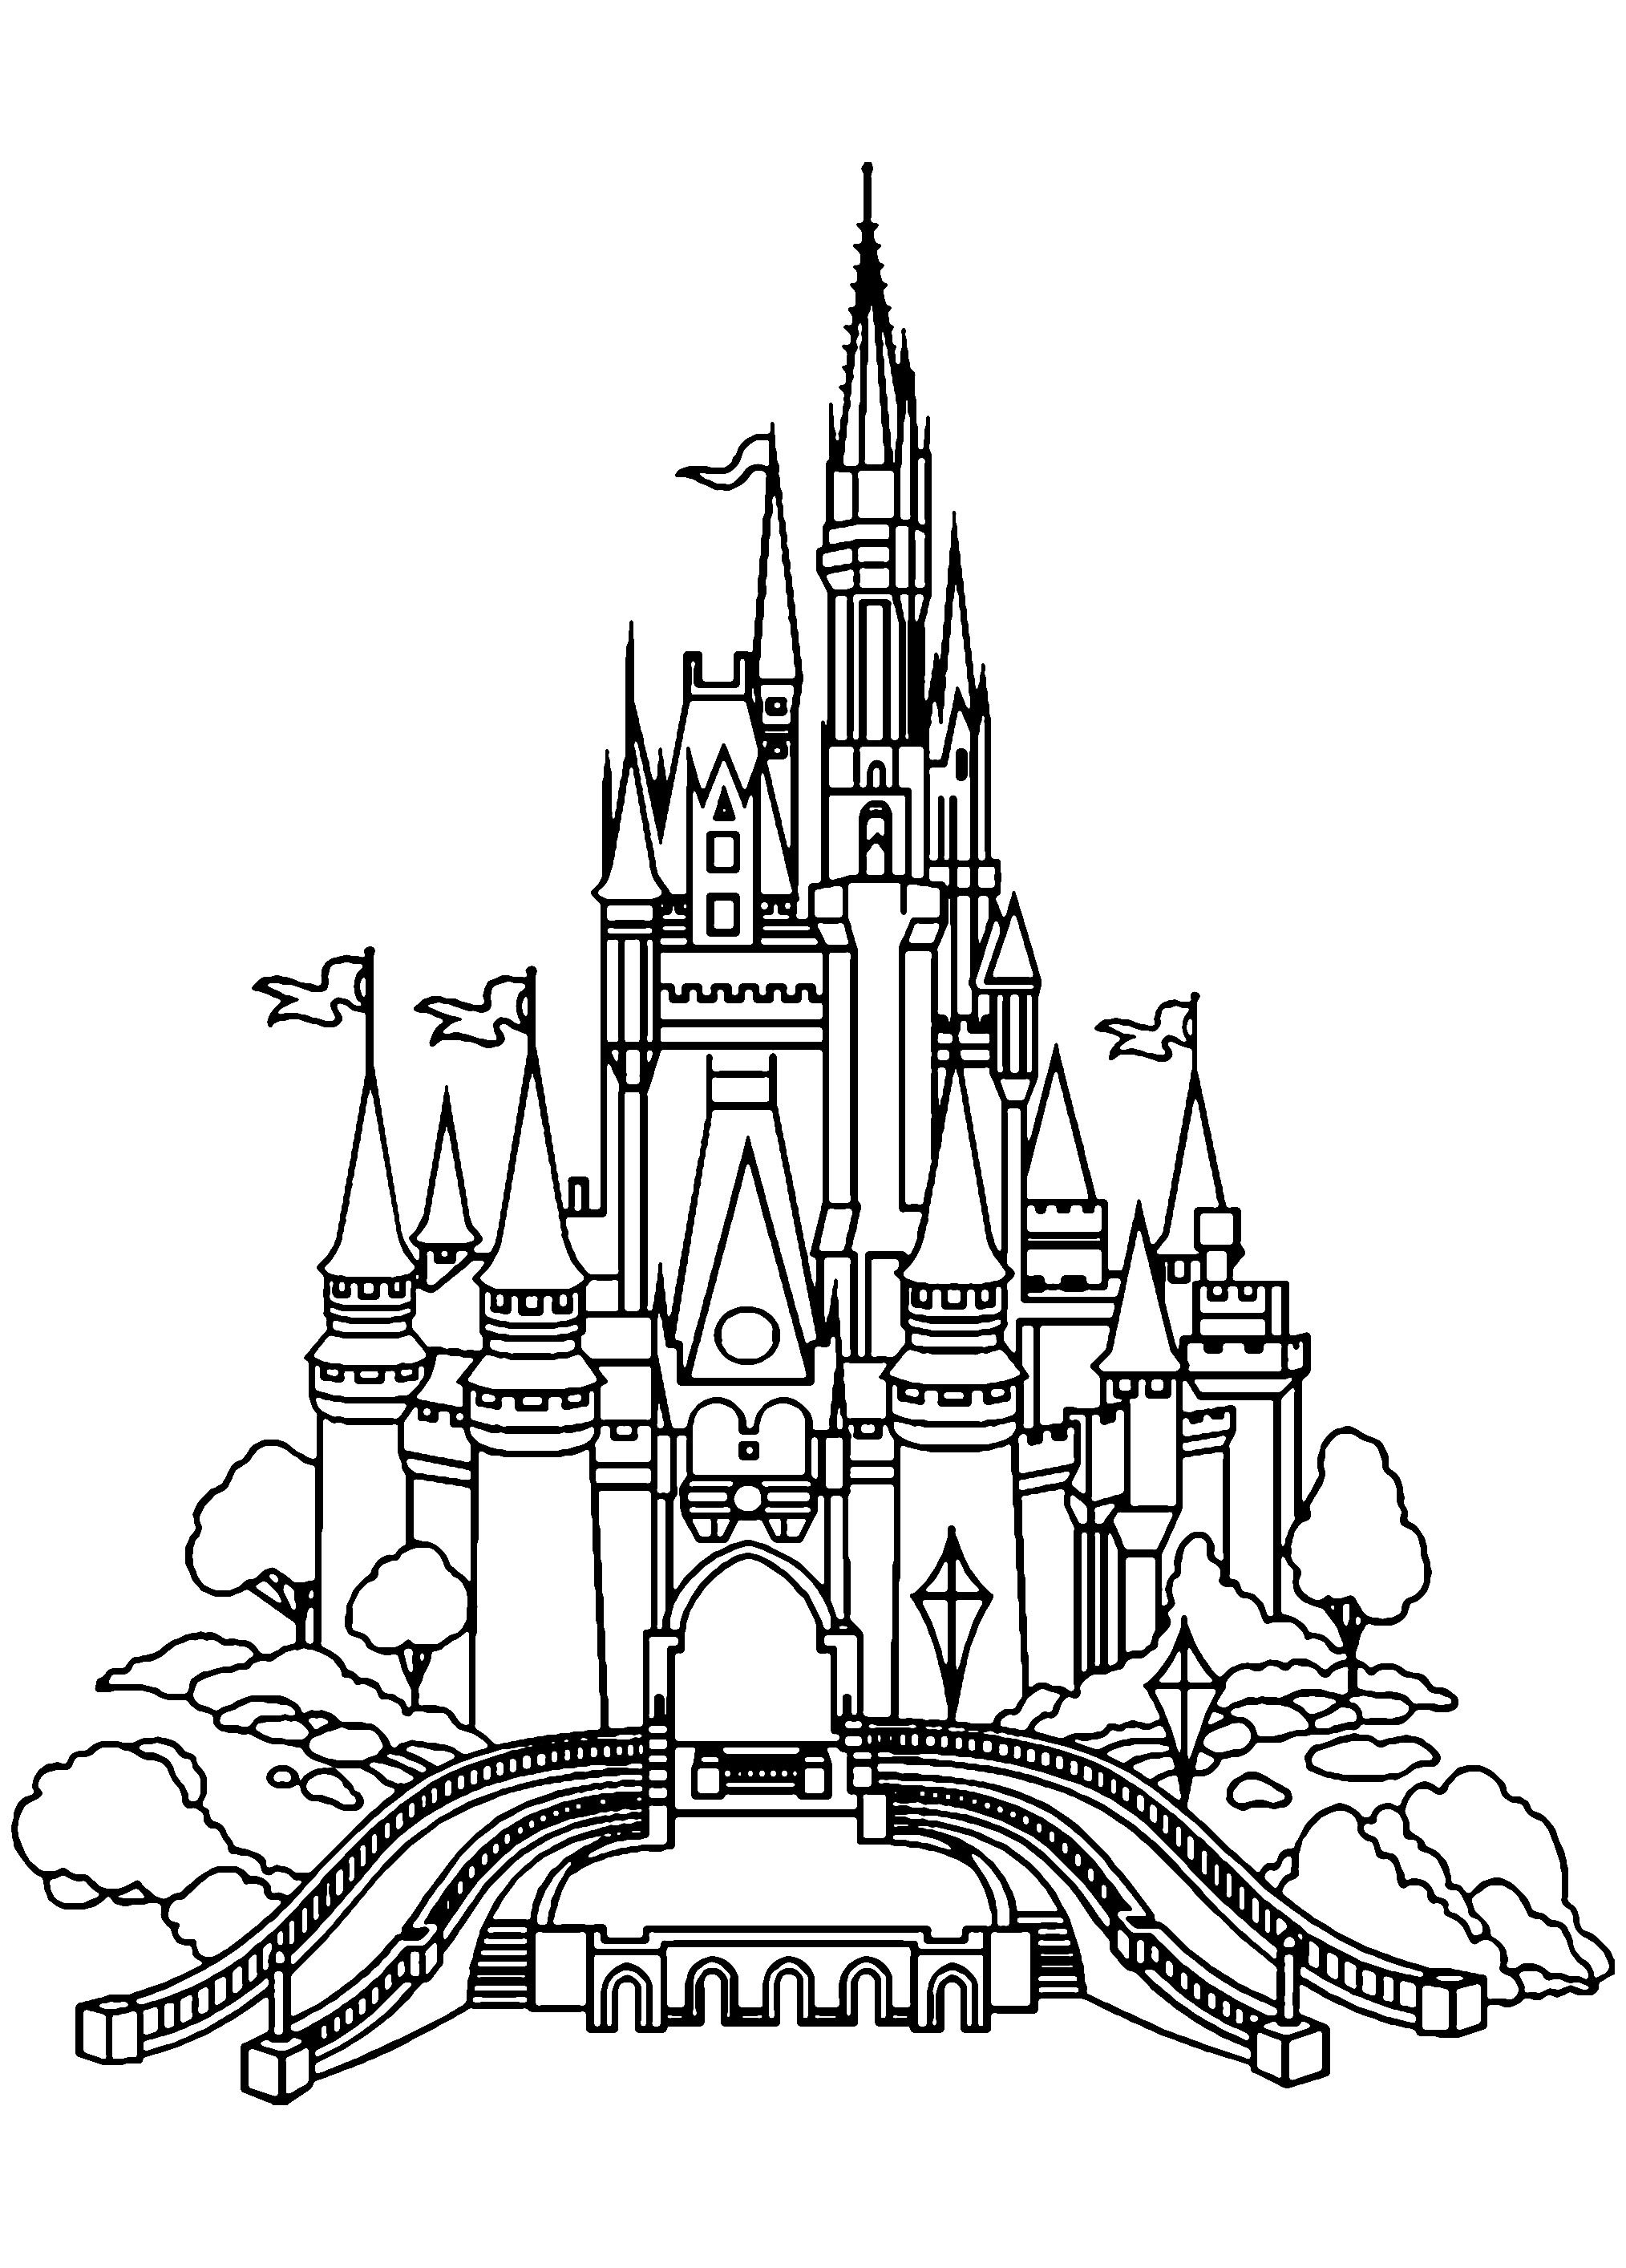 Coloring pages of a castle